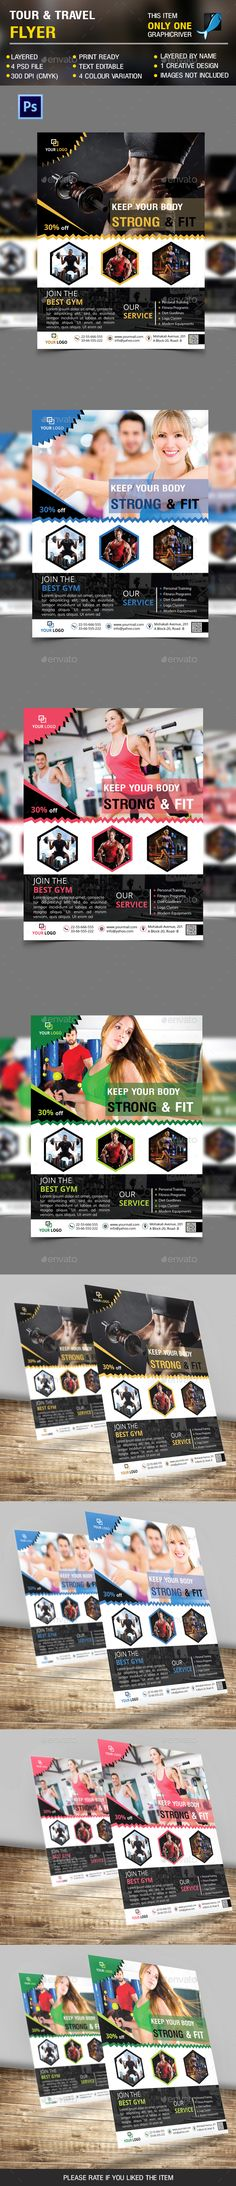 Fitness & Gym Flyer vol 3 — Photoshop PSD #exercise #workout • Available here → https://graphicriver.net/item/fitness-gym-flyer-vol-3/14382656?ref=pxcr